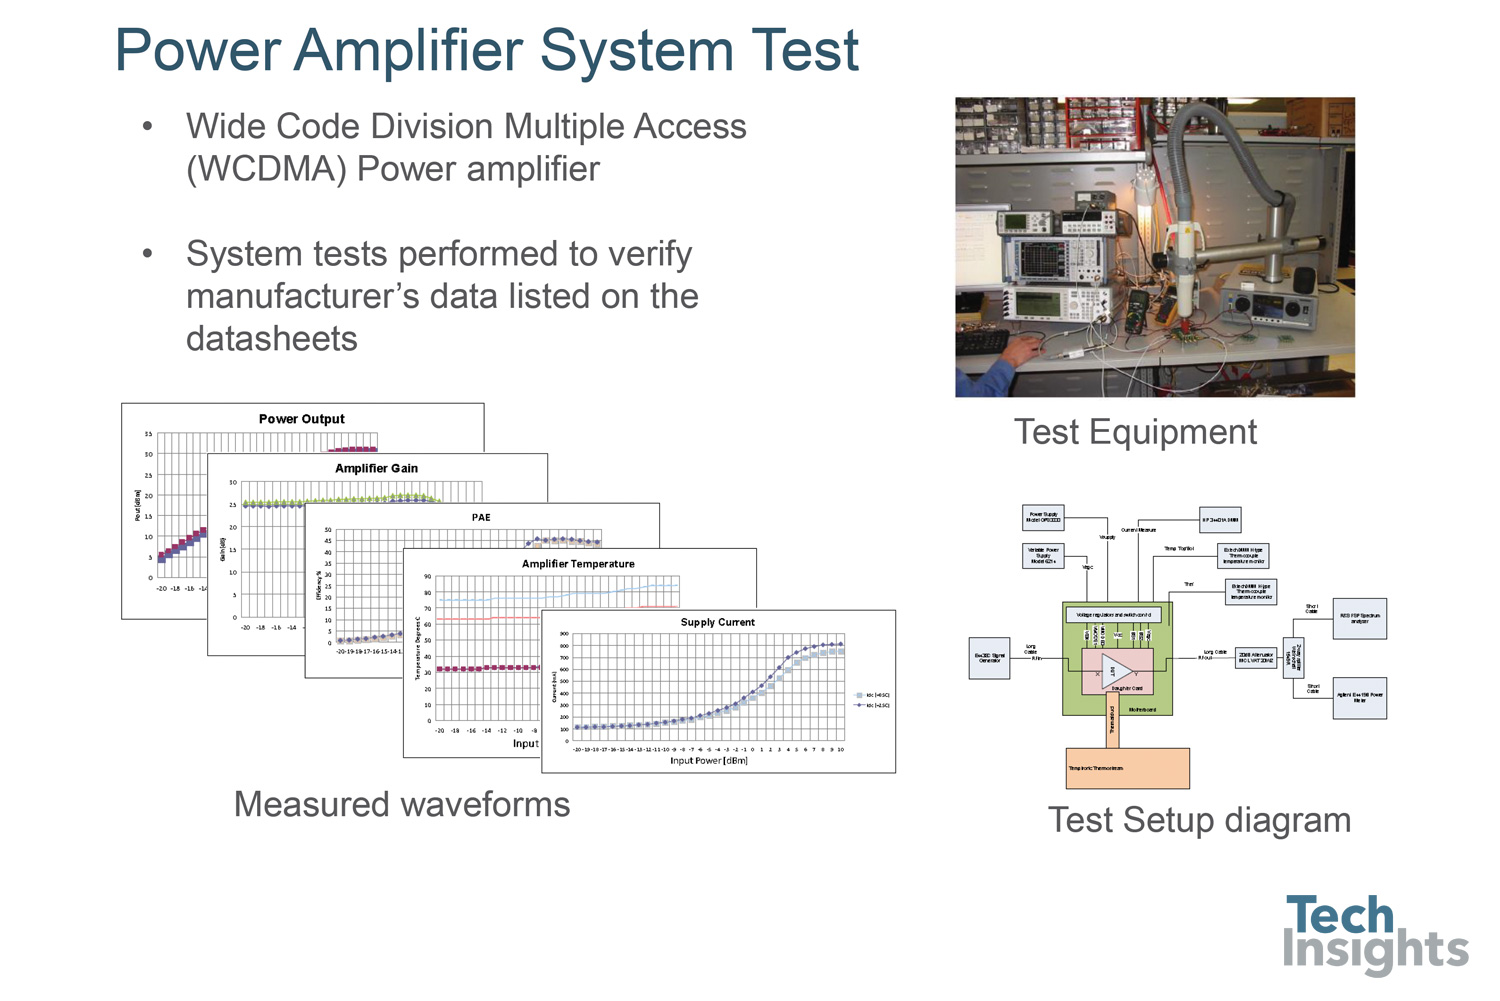 Power amplifier system testing. This analysis allows us to measure various operational parameters of a power amplifier